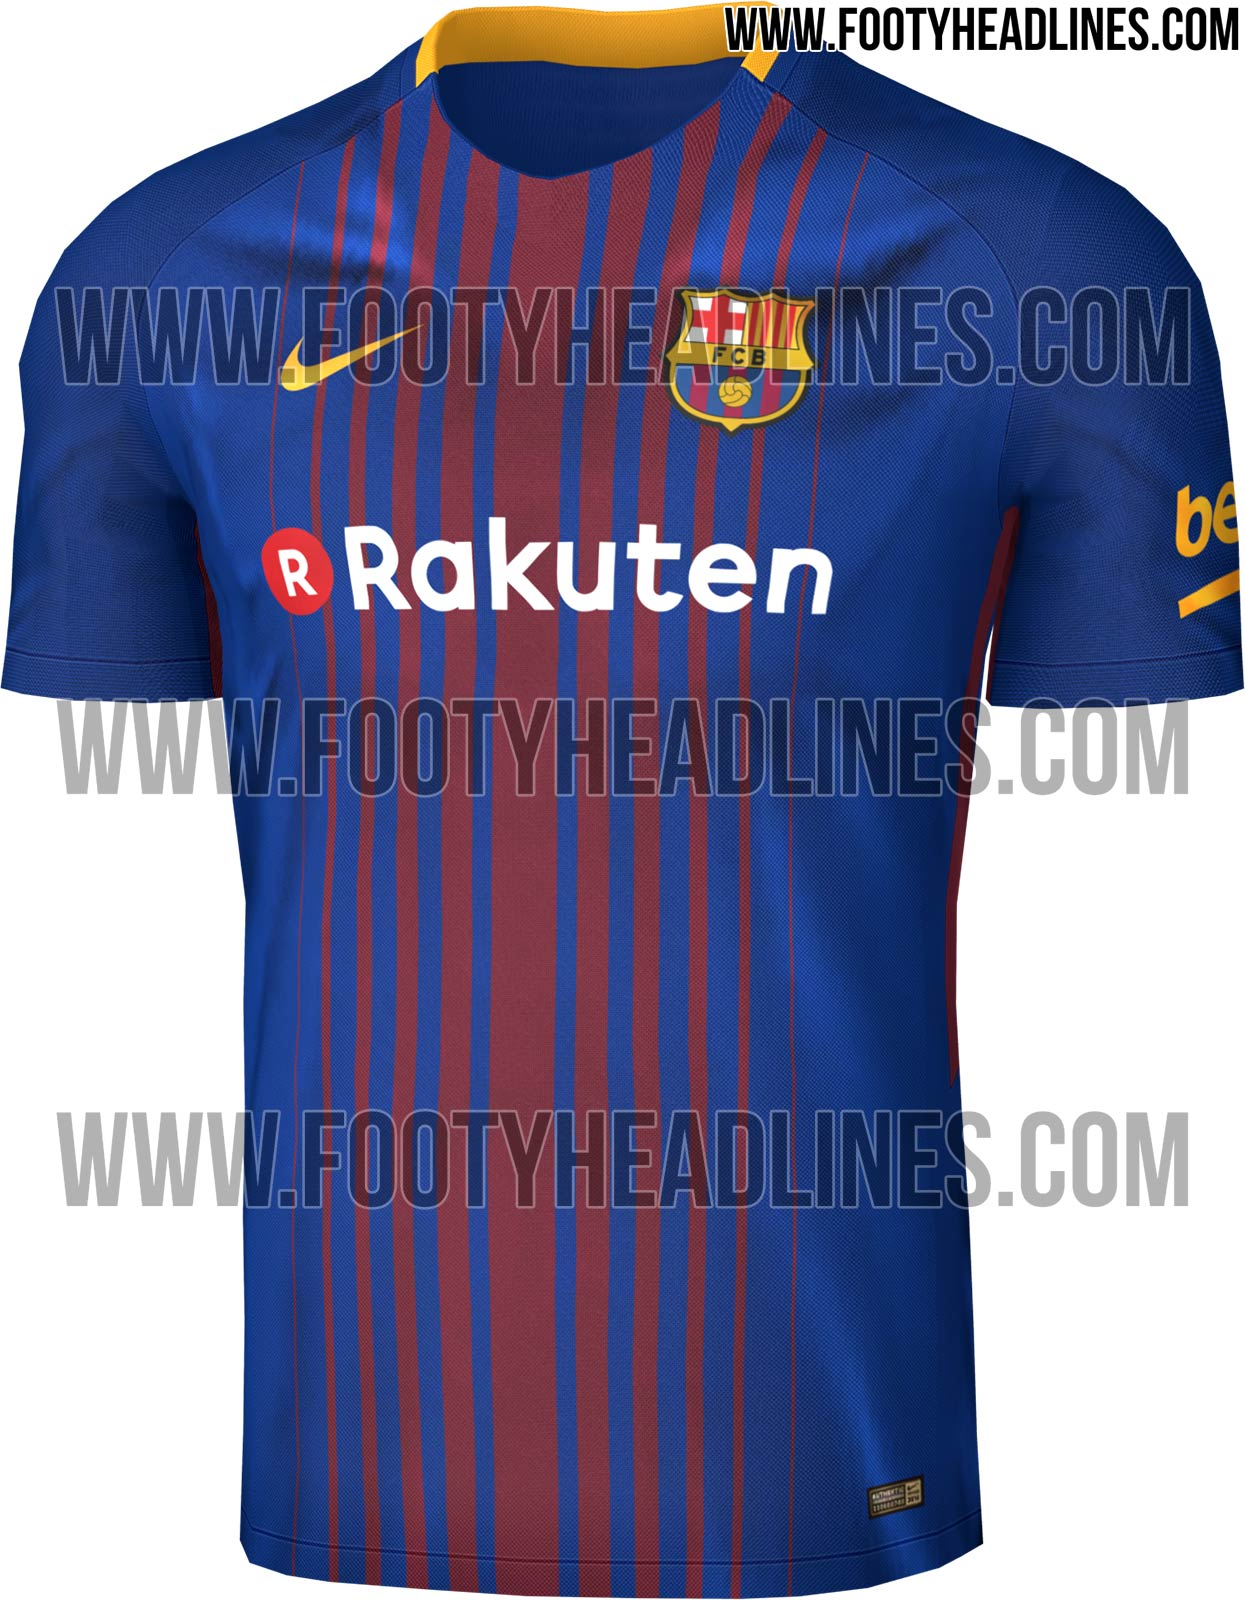 le nouveau maillot domicile 2017 2018 du fc barcelone floqu rakuten a fuit. Black Bedroom Furniture Sets. Home Design Ideas